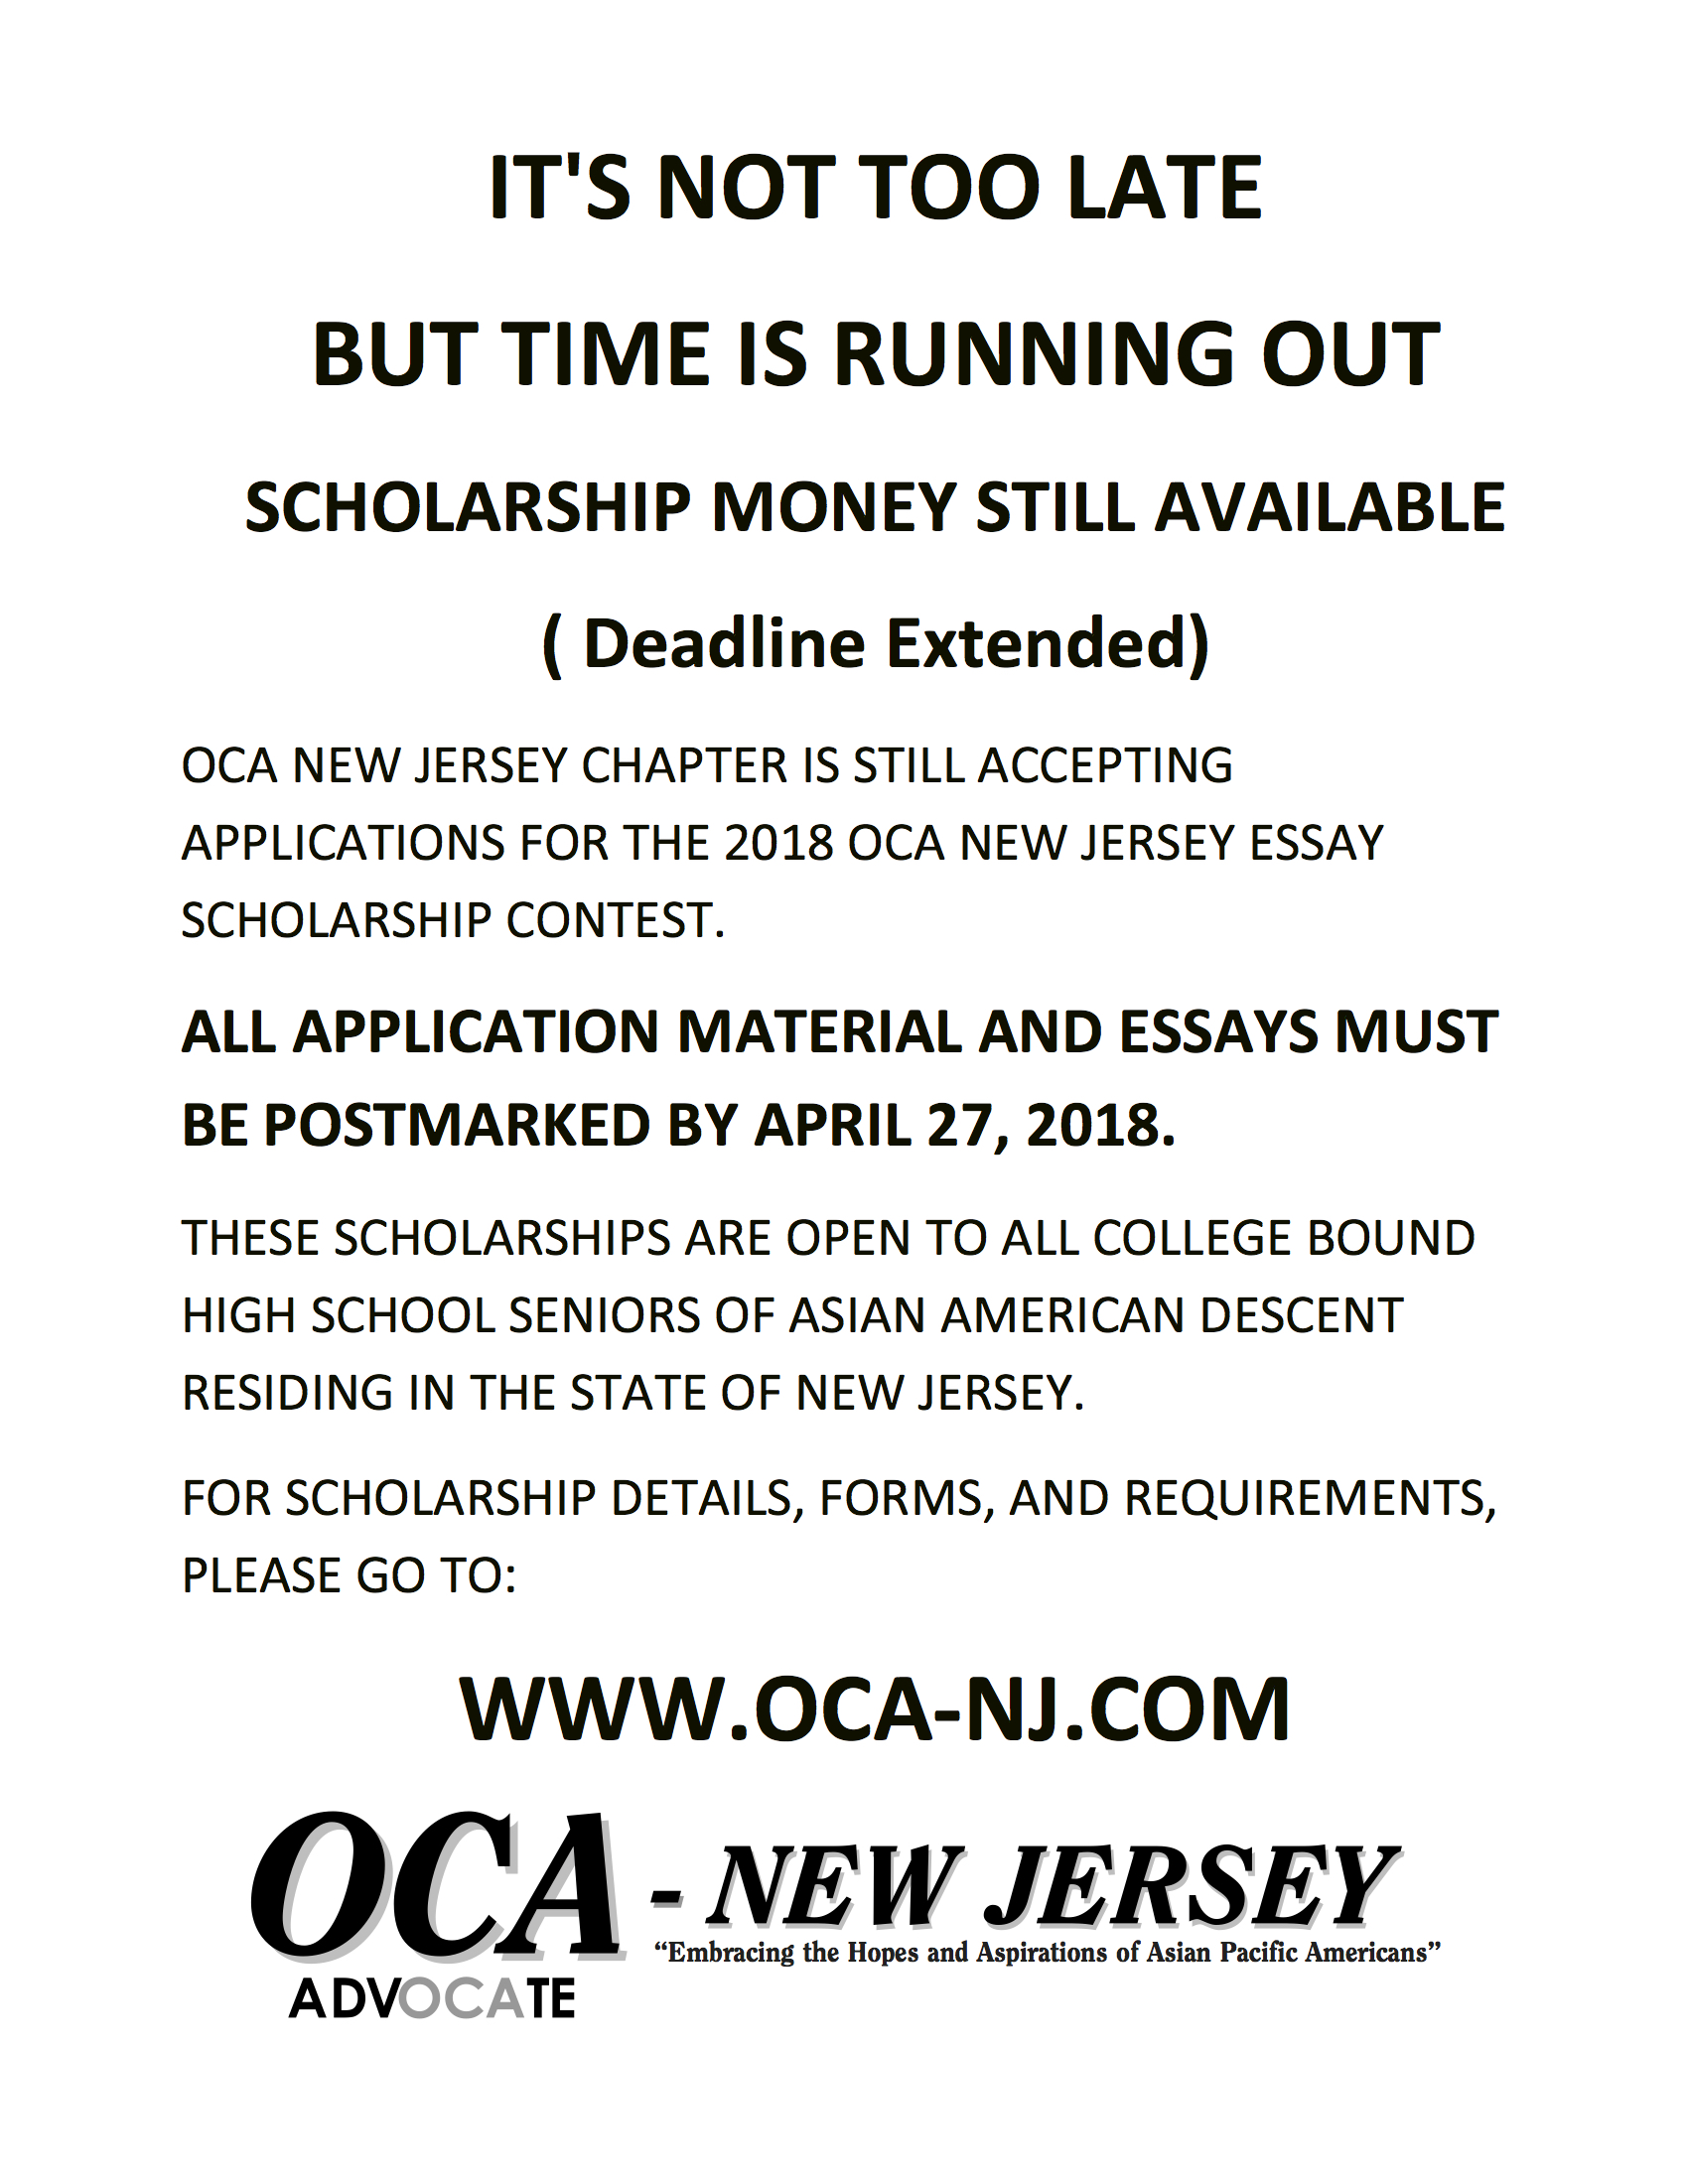 014 Essay Example Scholarships Entended Deadline Oca Nj Shocking 2018 Canada 2019 No For High School Juniors Full